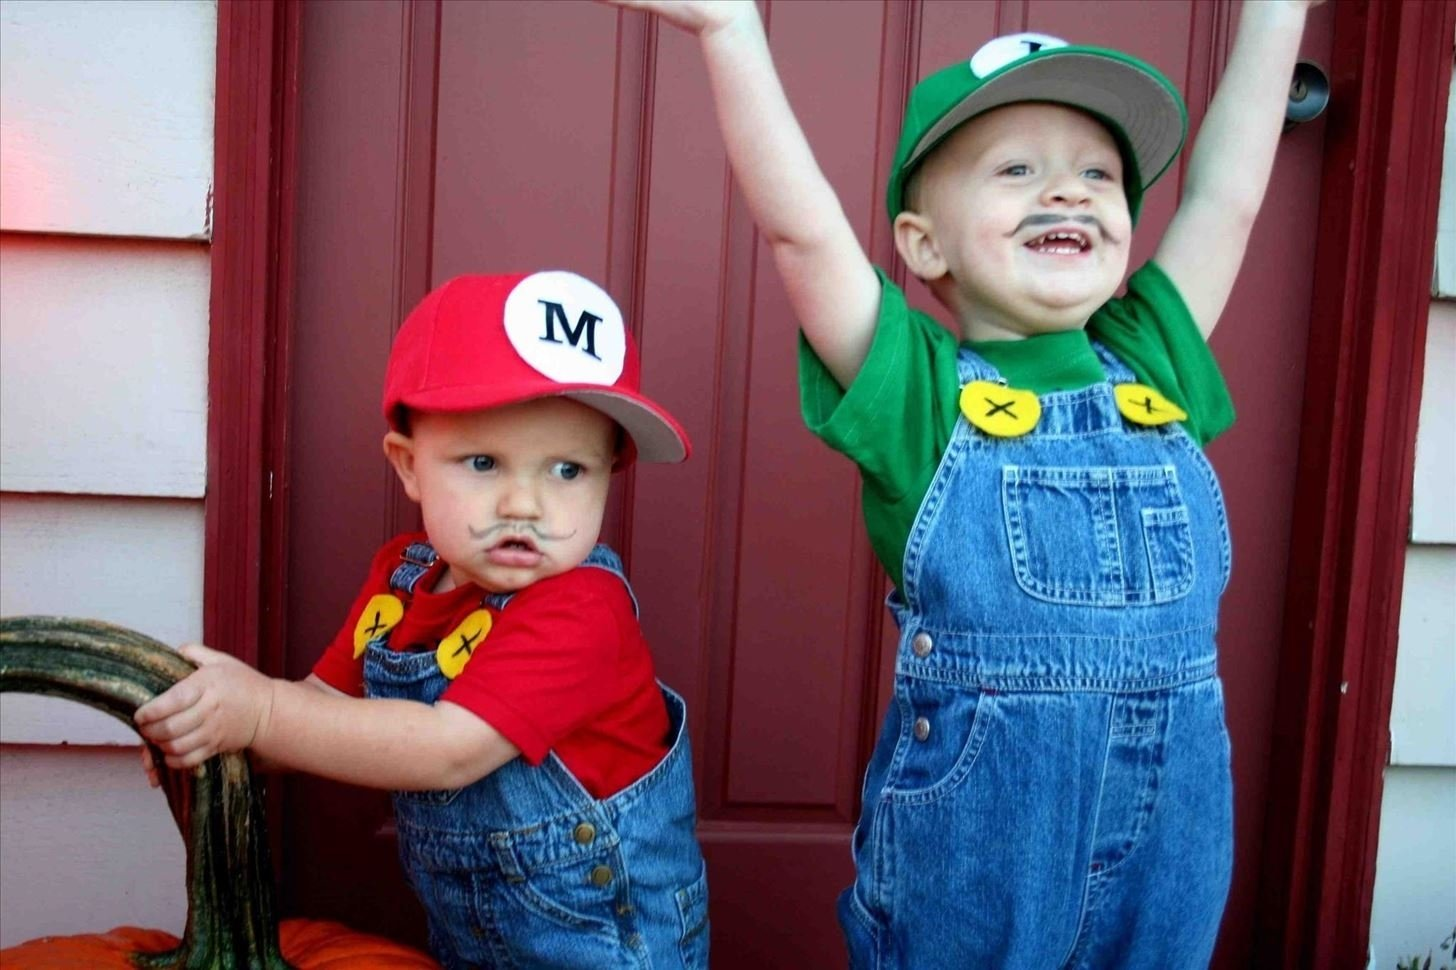 10 Perfect Ideas For Kids Halloween Costumes 10 cheap easy awesome diy halloween costumes for kids homemade 9 2021